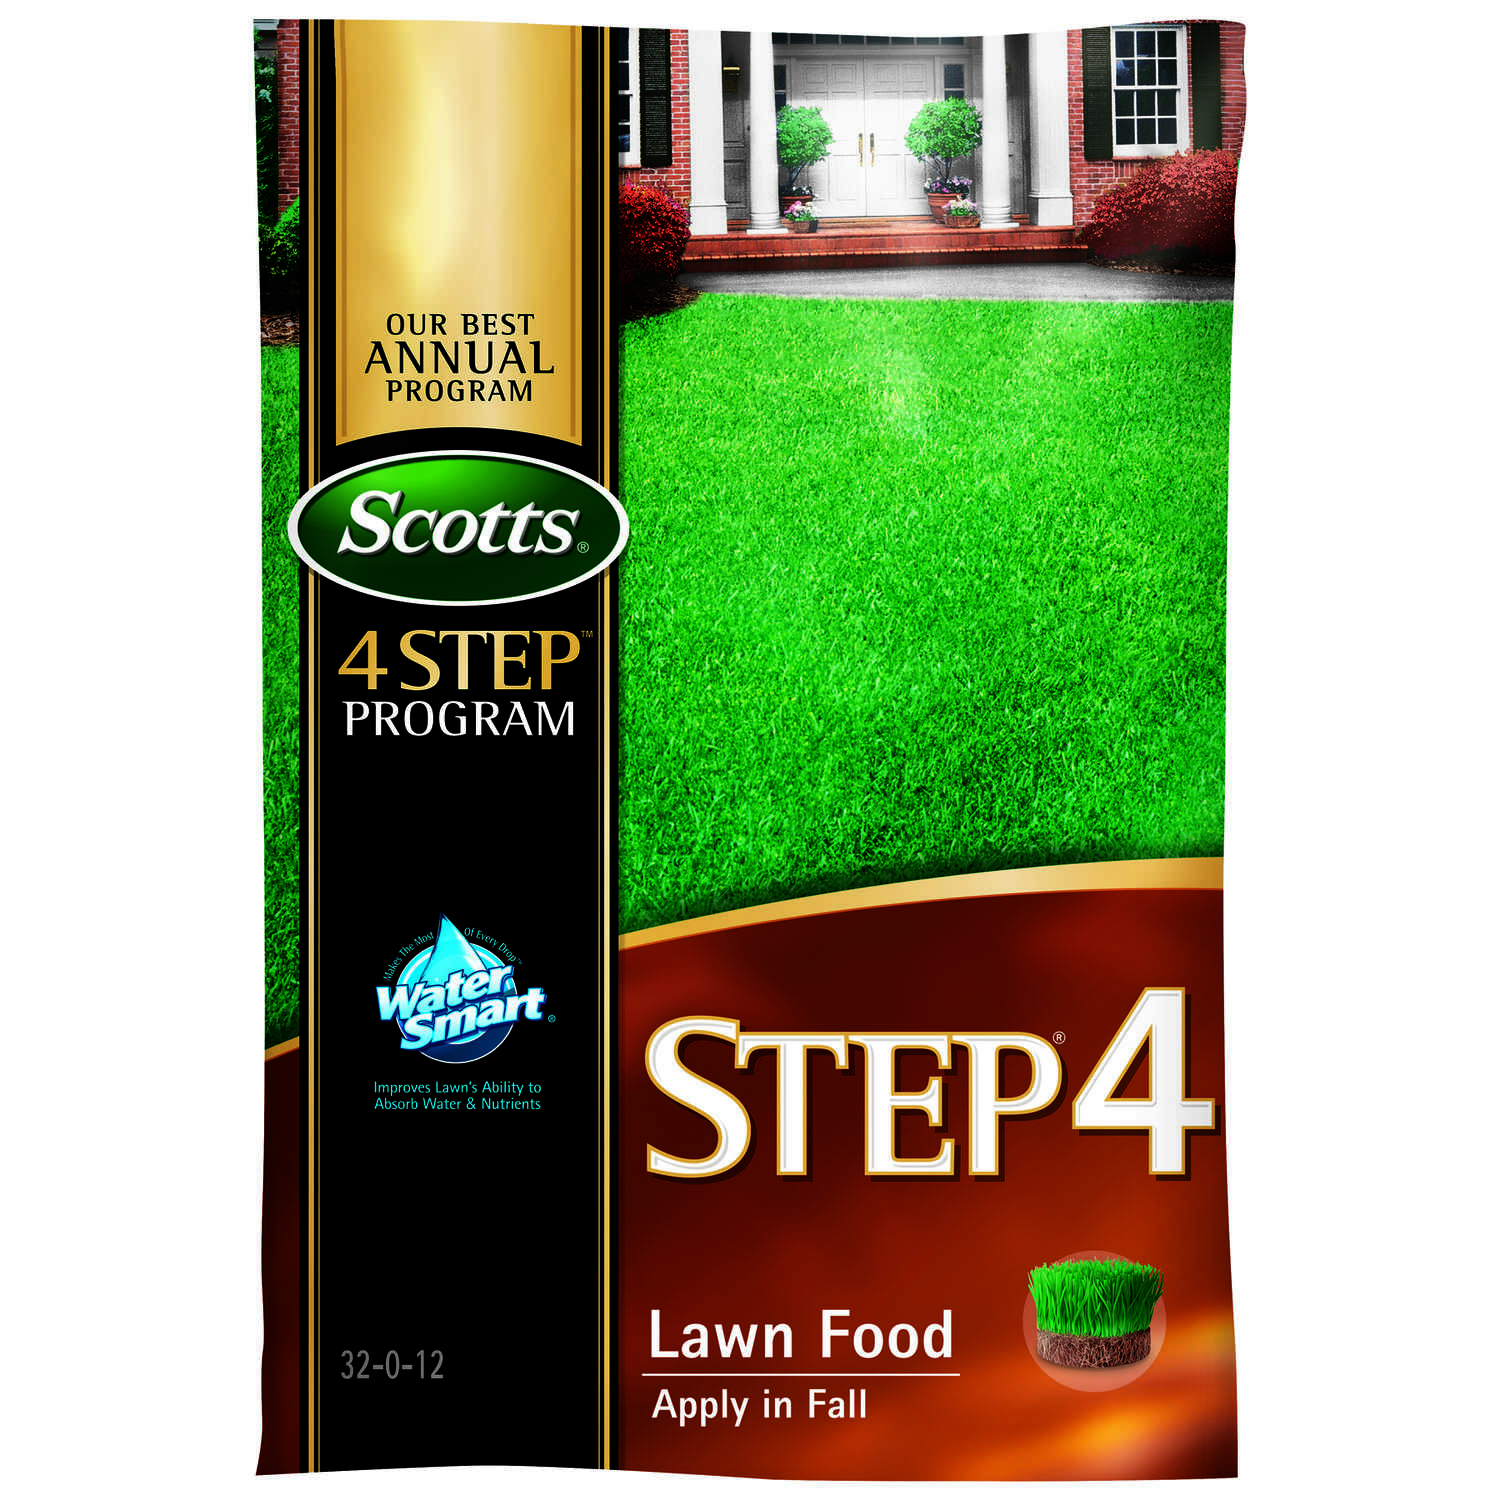 Scotts Step 4 32 0 12 Lawn Fertilizer For All Grass Types